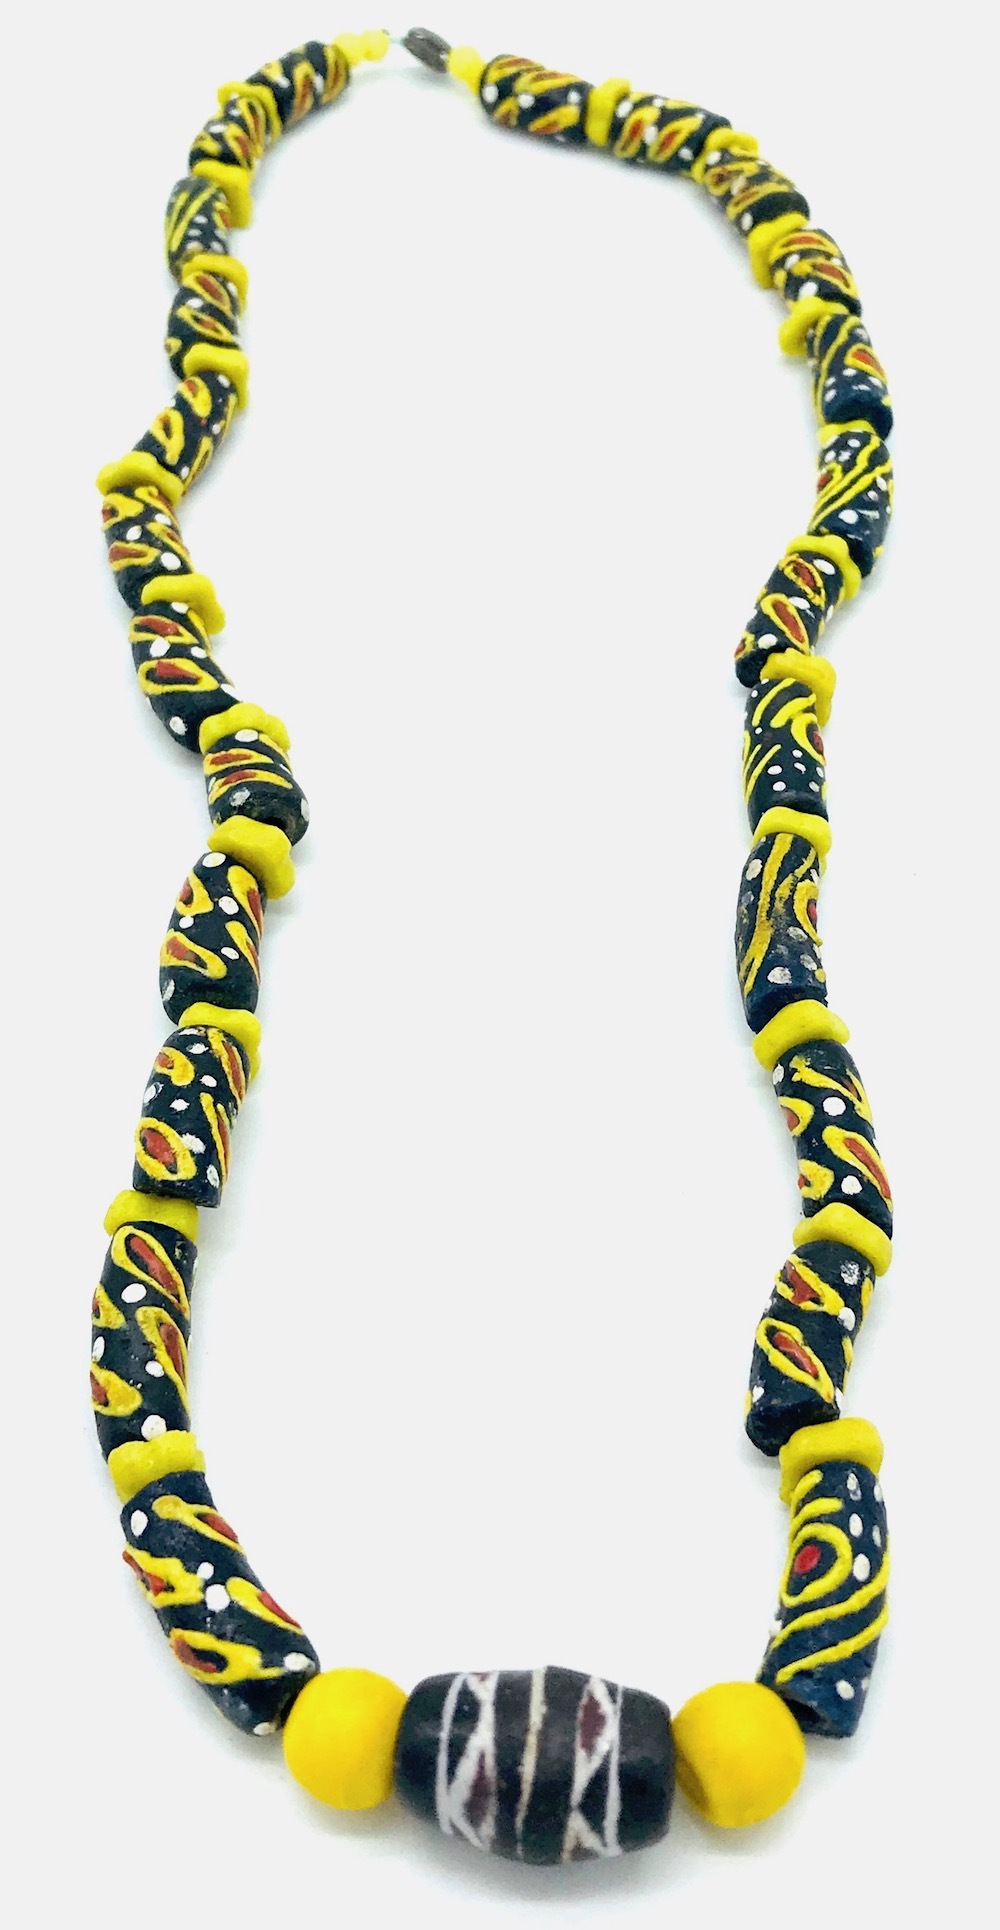 Mali, West African Tribal, Hand-Painted Djenne Yellow Bead Necklace